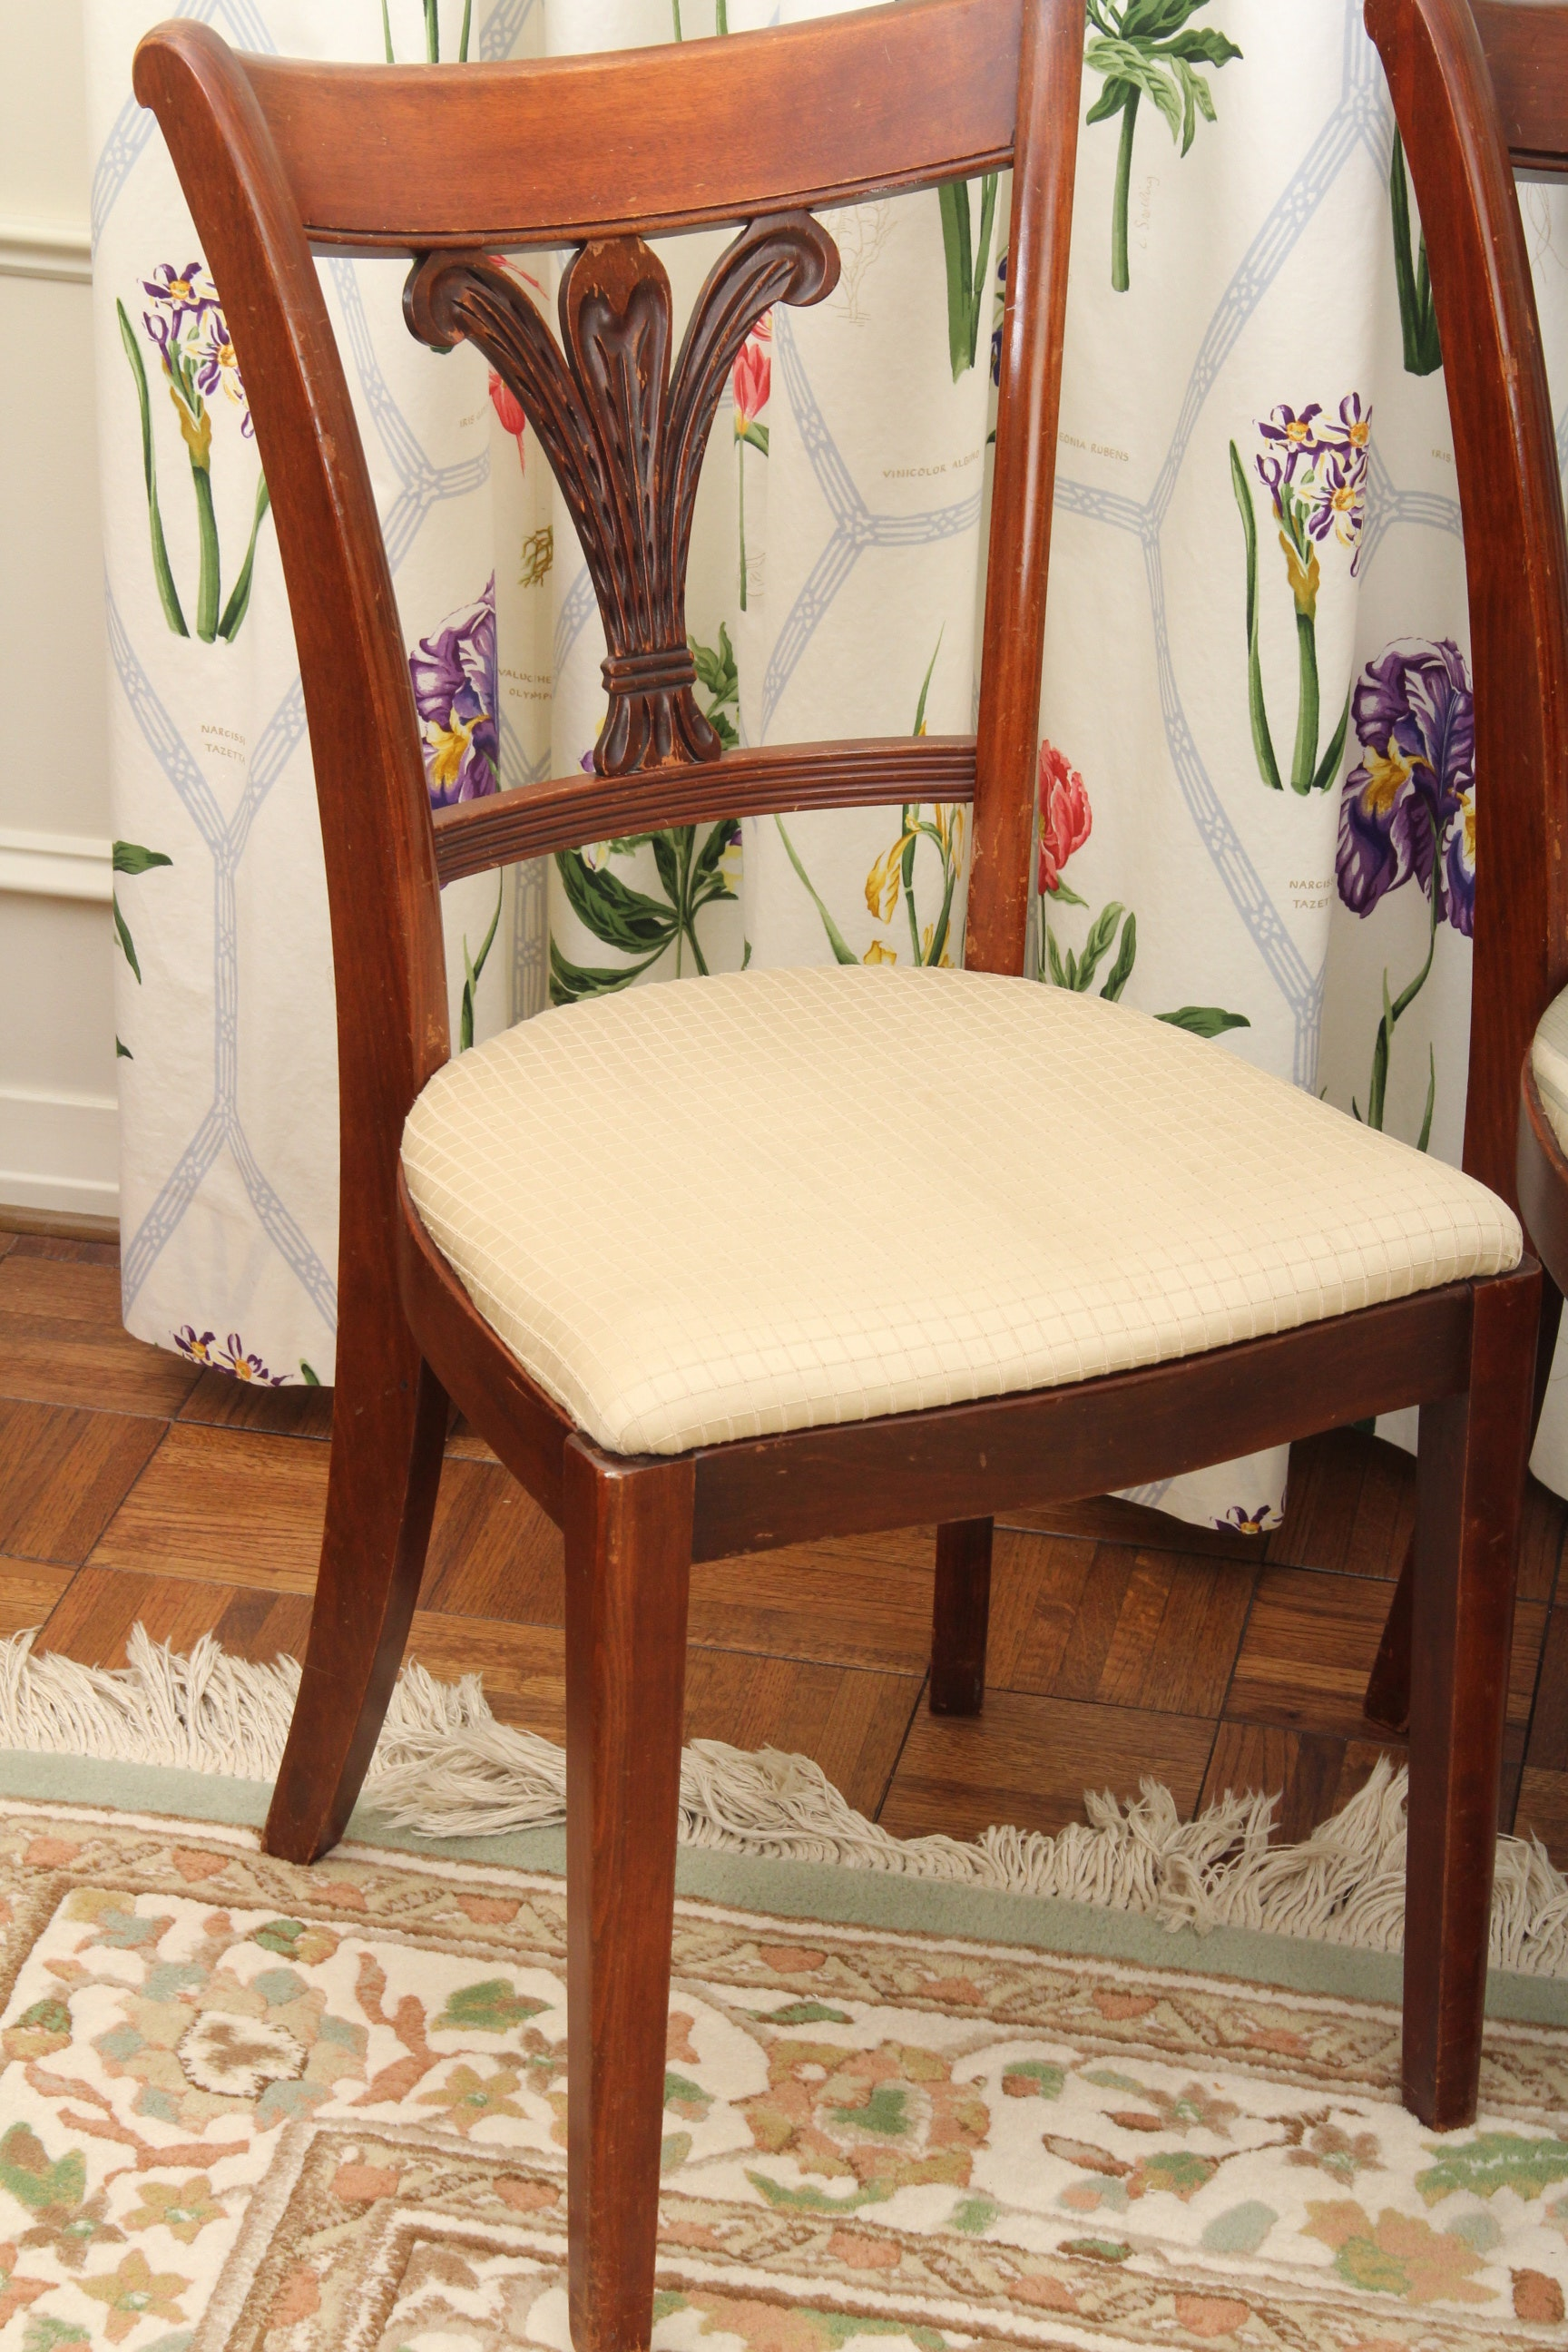 Dining Room Sets Columbus Ohio Duncan Phyfe Style Dining Room Table And Chairs Ebth